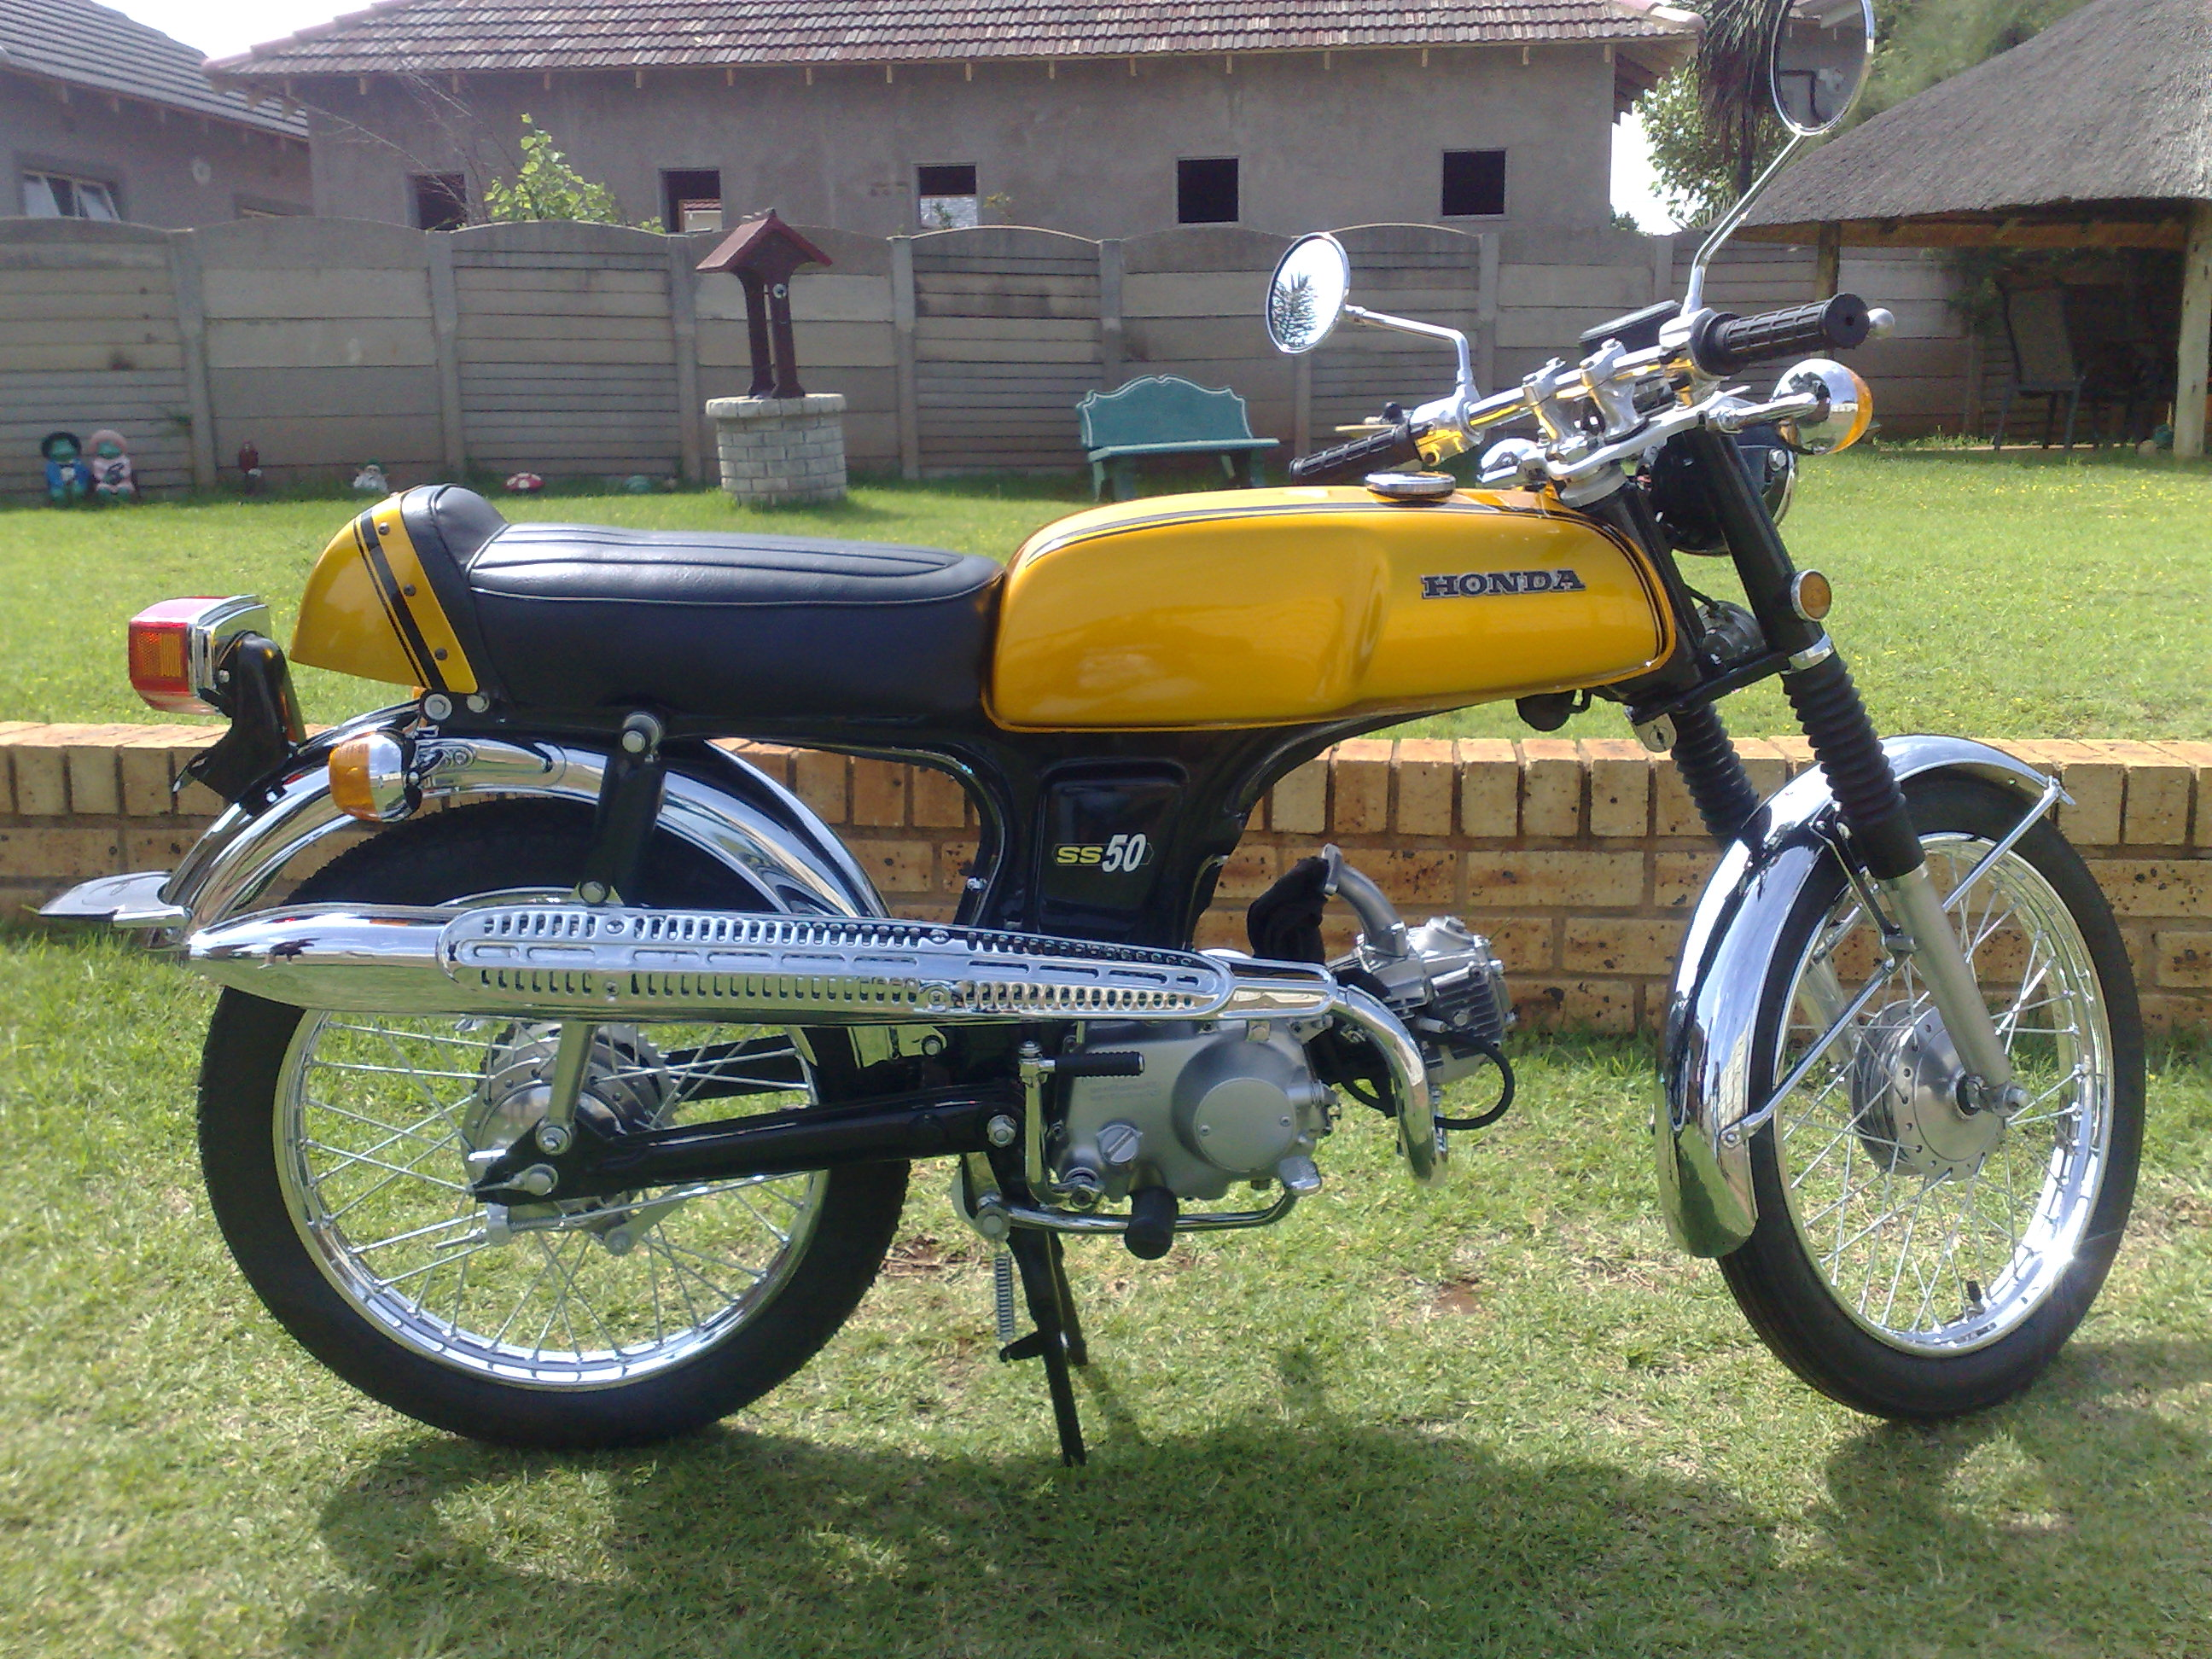 1974 Honda SS50 GT after pic 1